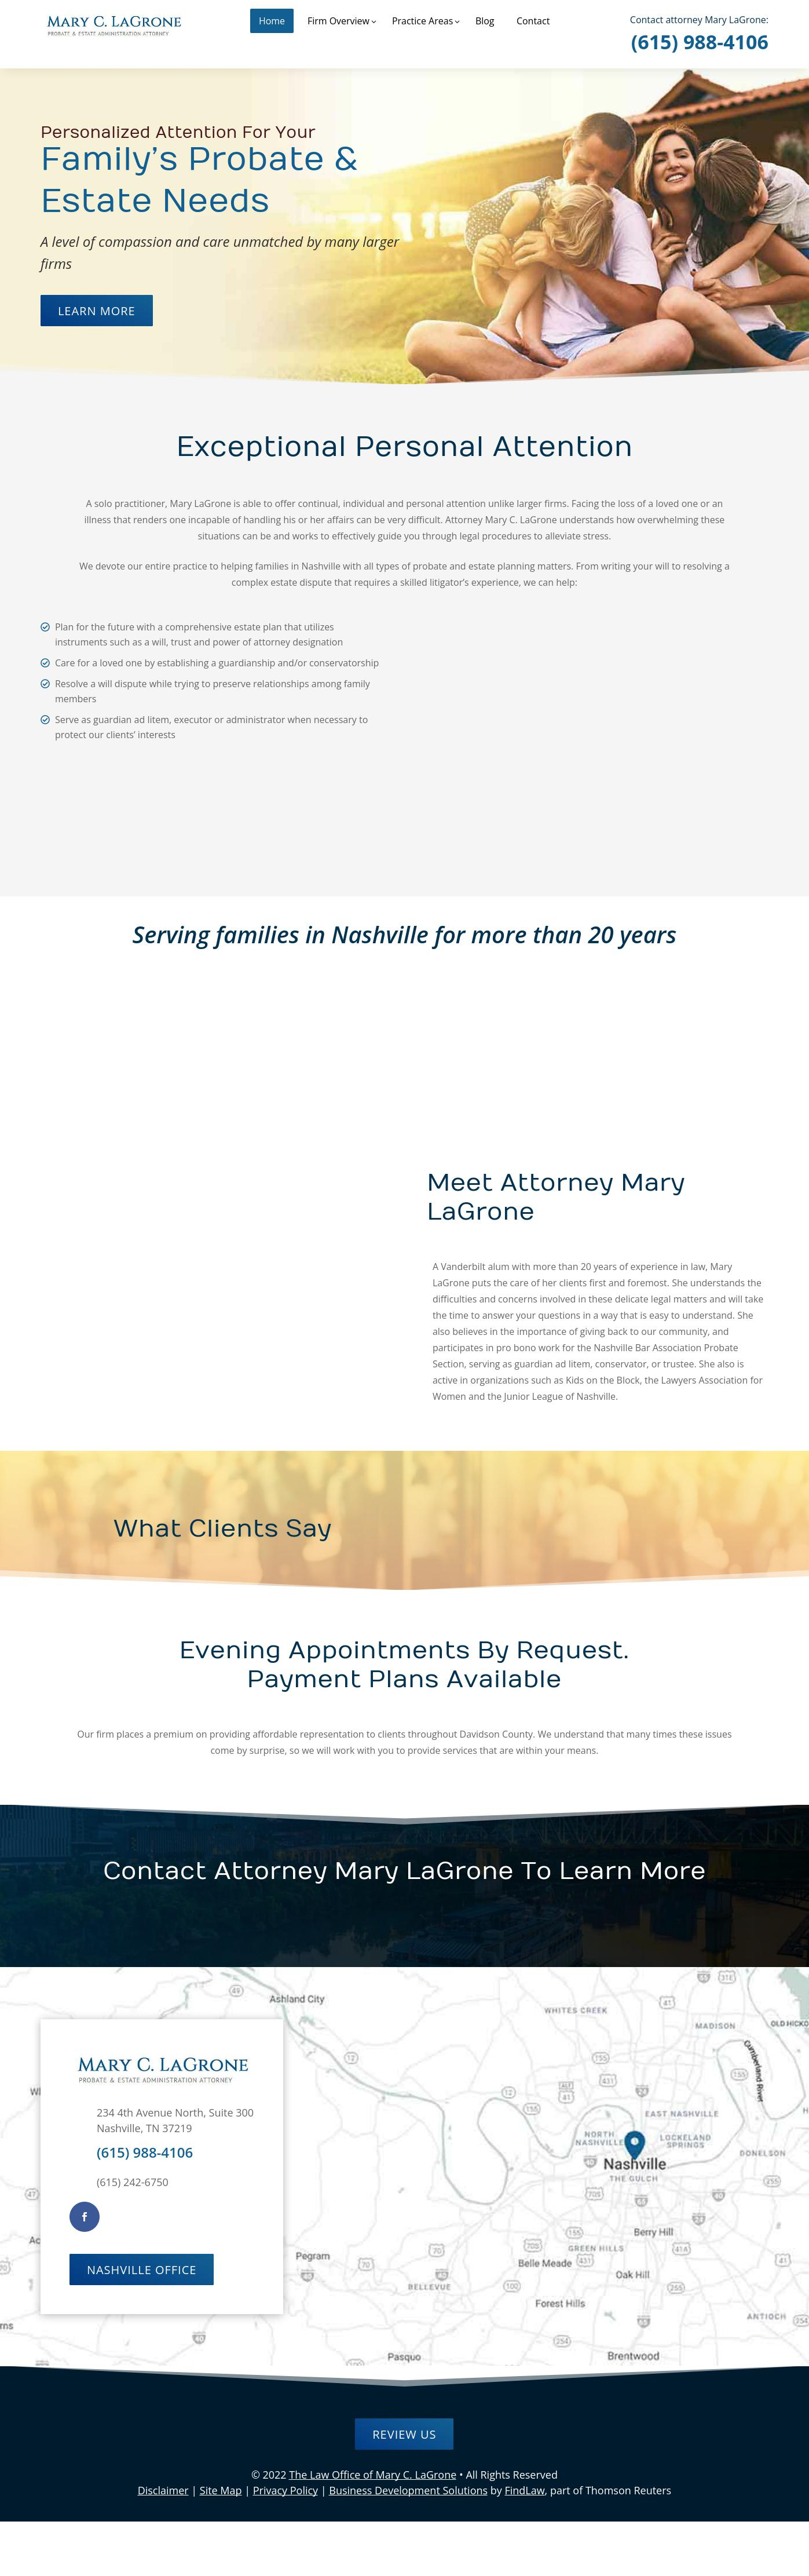 Mary C. LaGrone - Nashville TN Lawyers